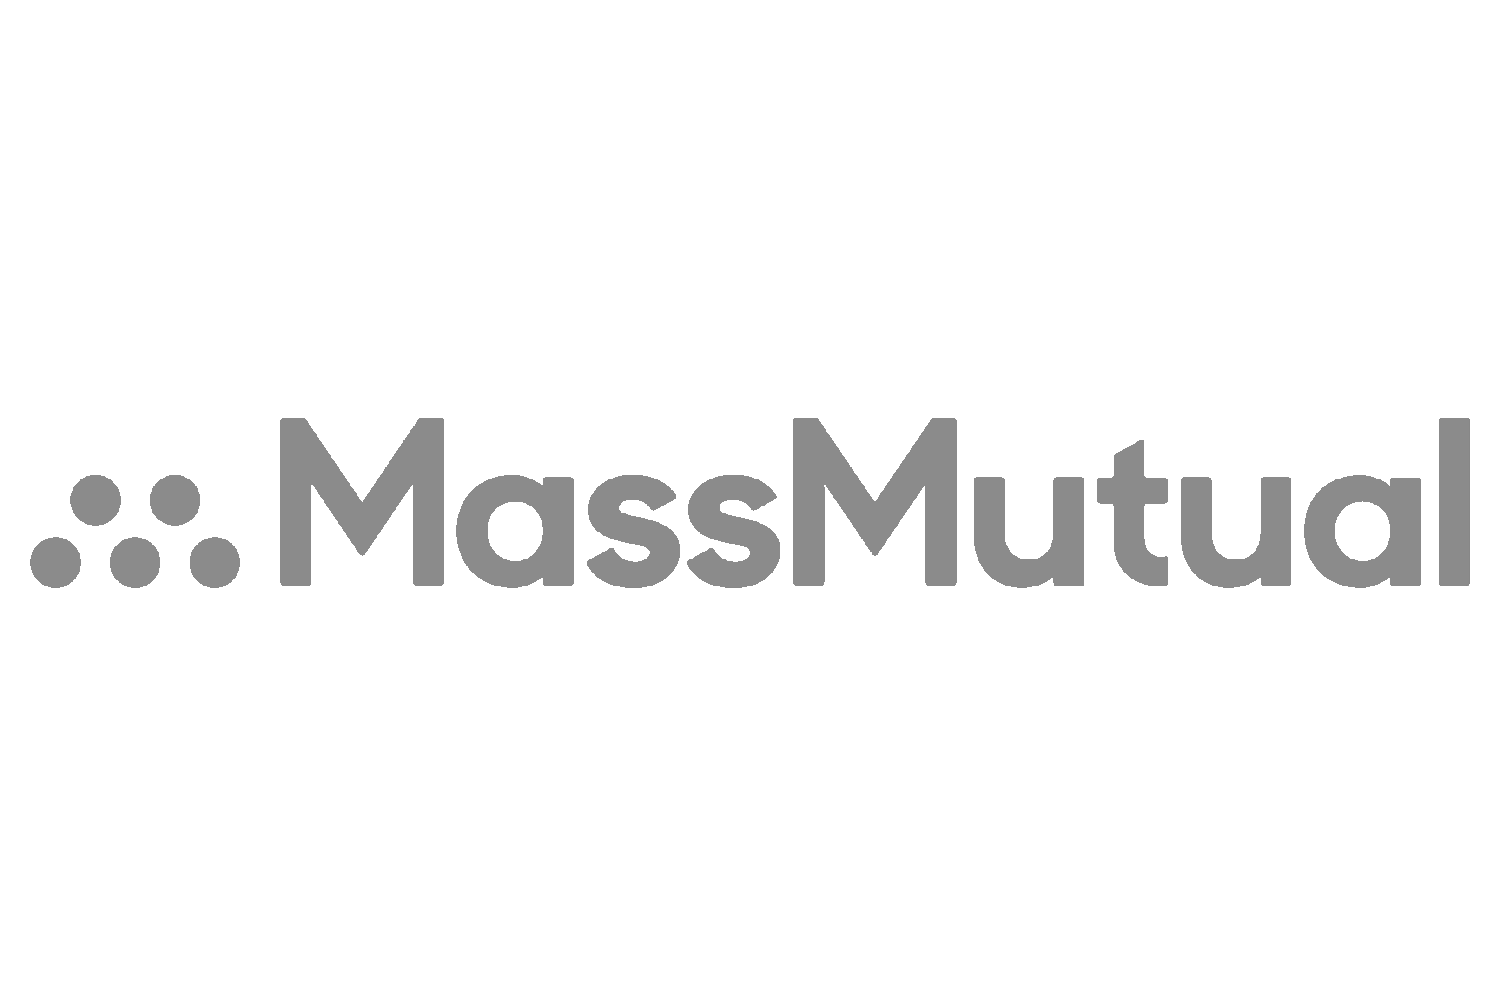 Mass_Mutual.png